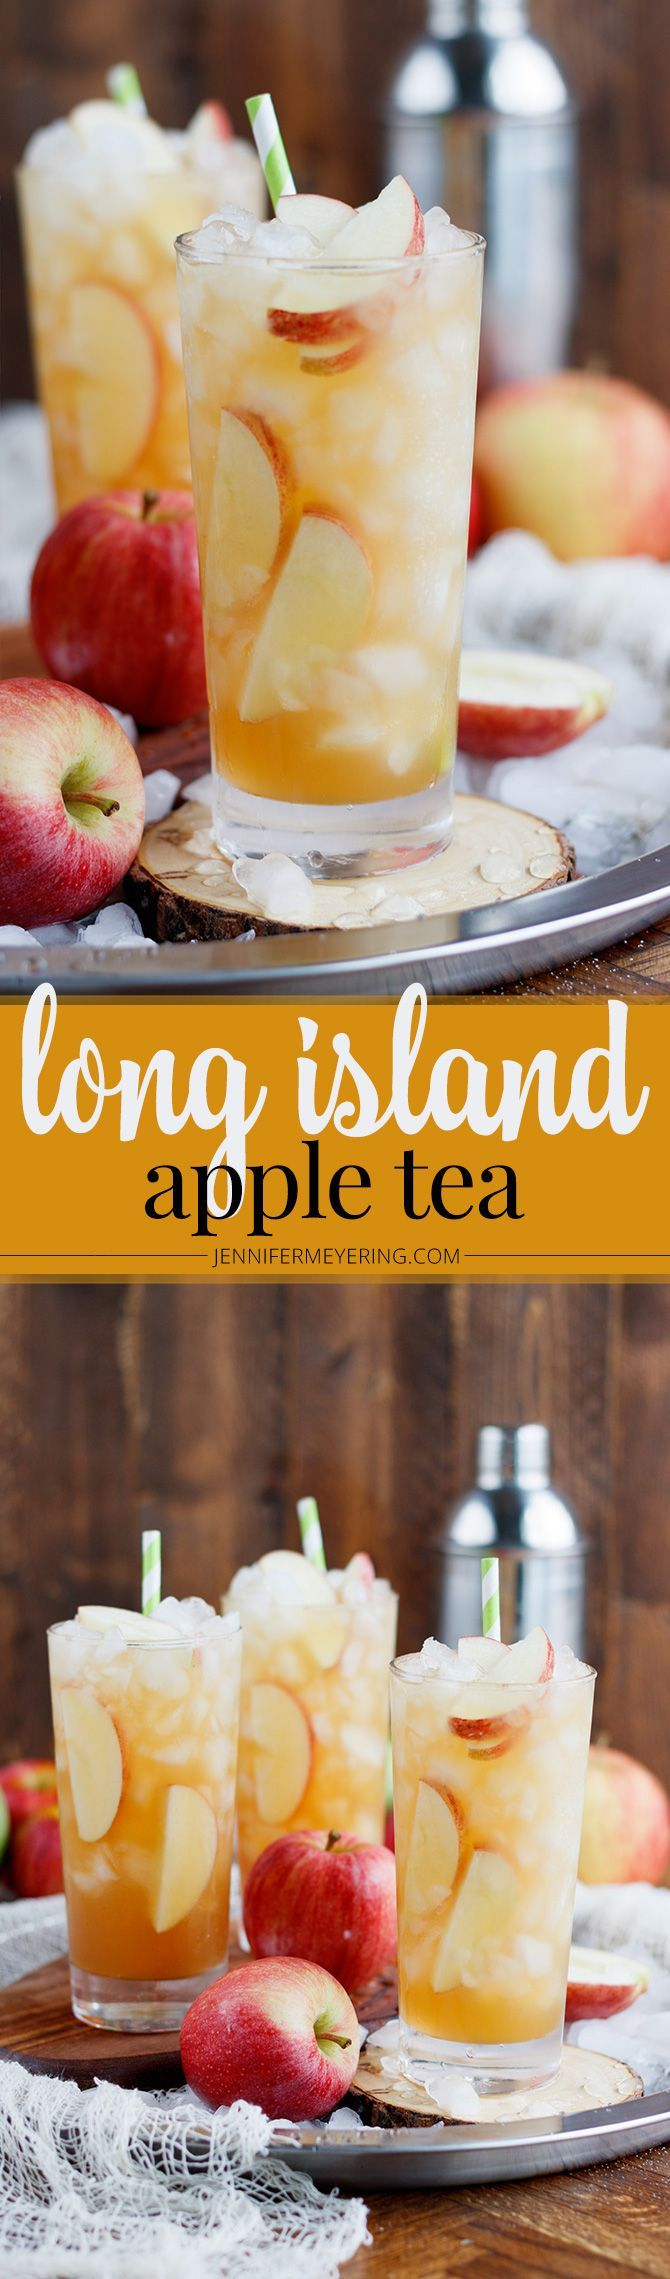 Long Island Apple Iced Tea - JenniferMeyering.com